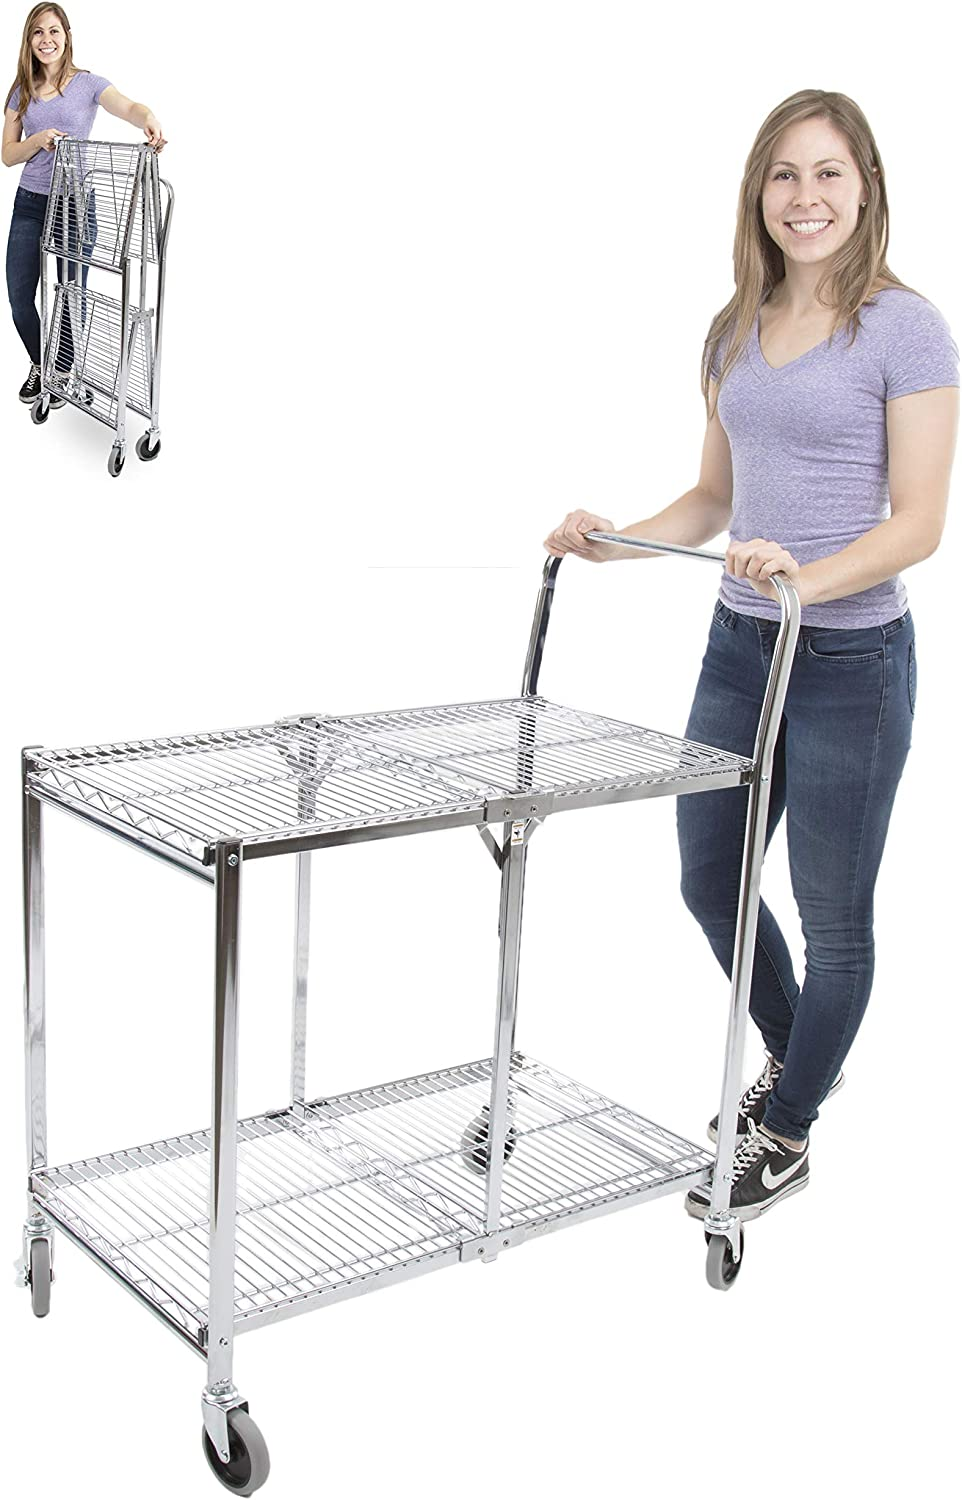 Original Tubstr Collapsible Wire Cart – 2 Shelf Wire Utility Cart Provides Convenient Transport, Holds 200 Pounds and Folds Up for Storage – Commercial Grade